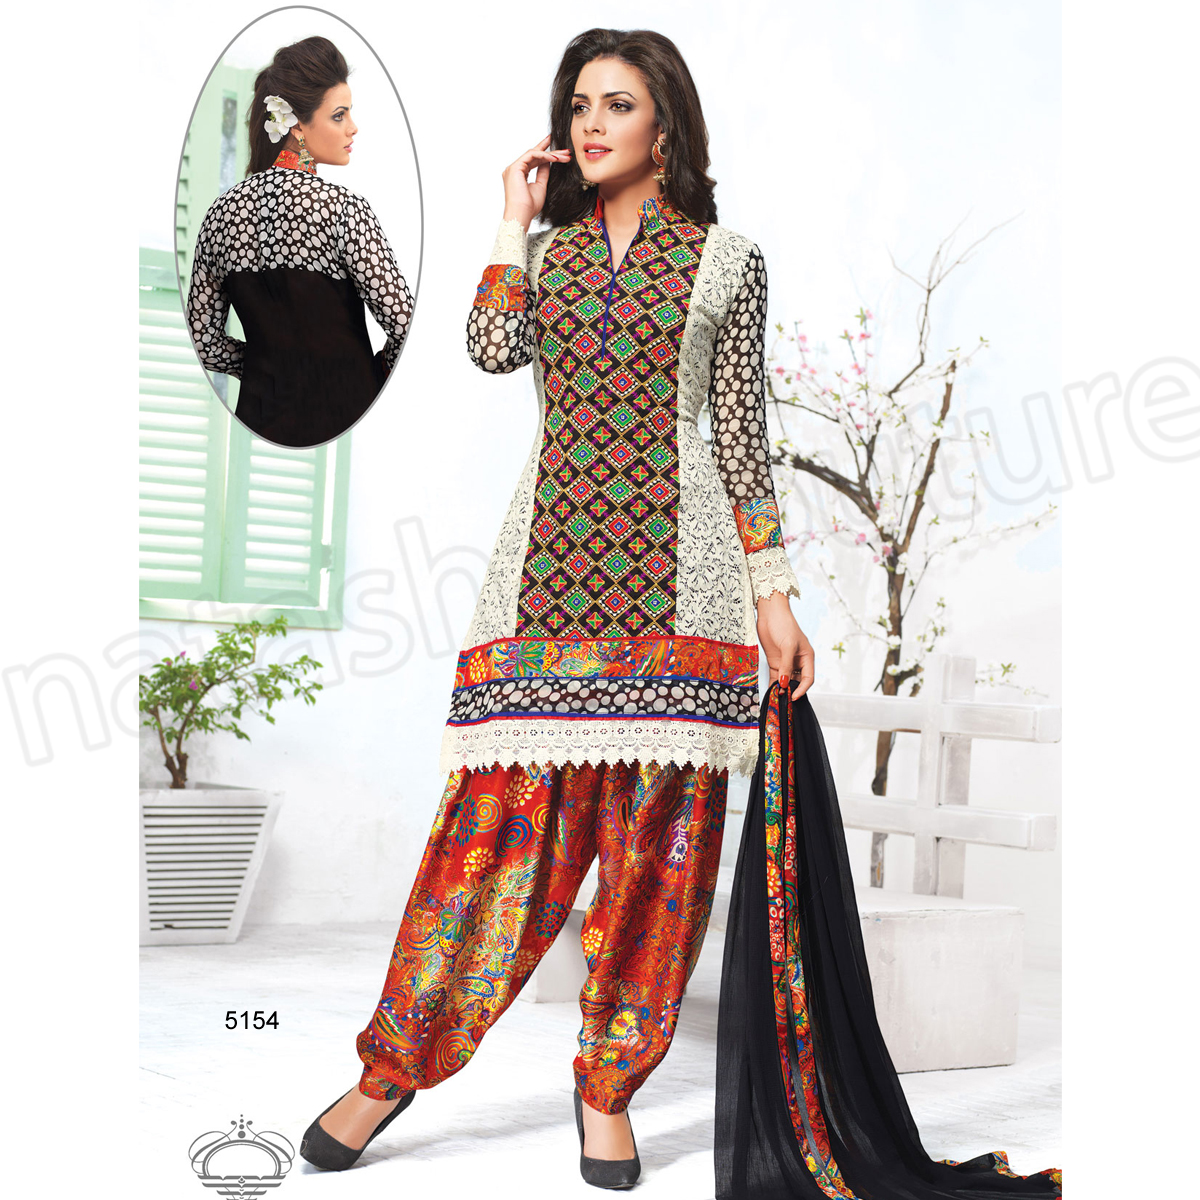 Latest Indian Patiala shalwar kameez fashion 2015-2016 (16)